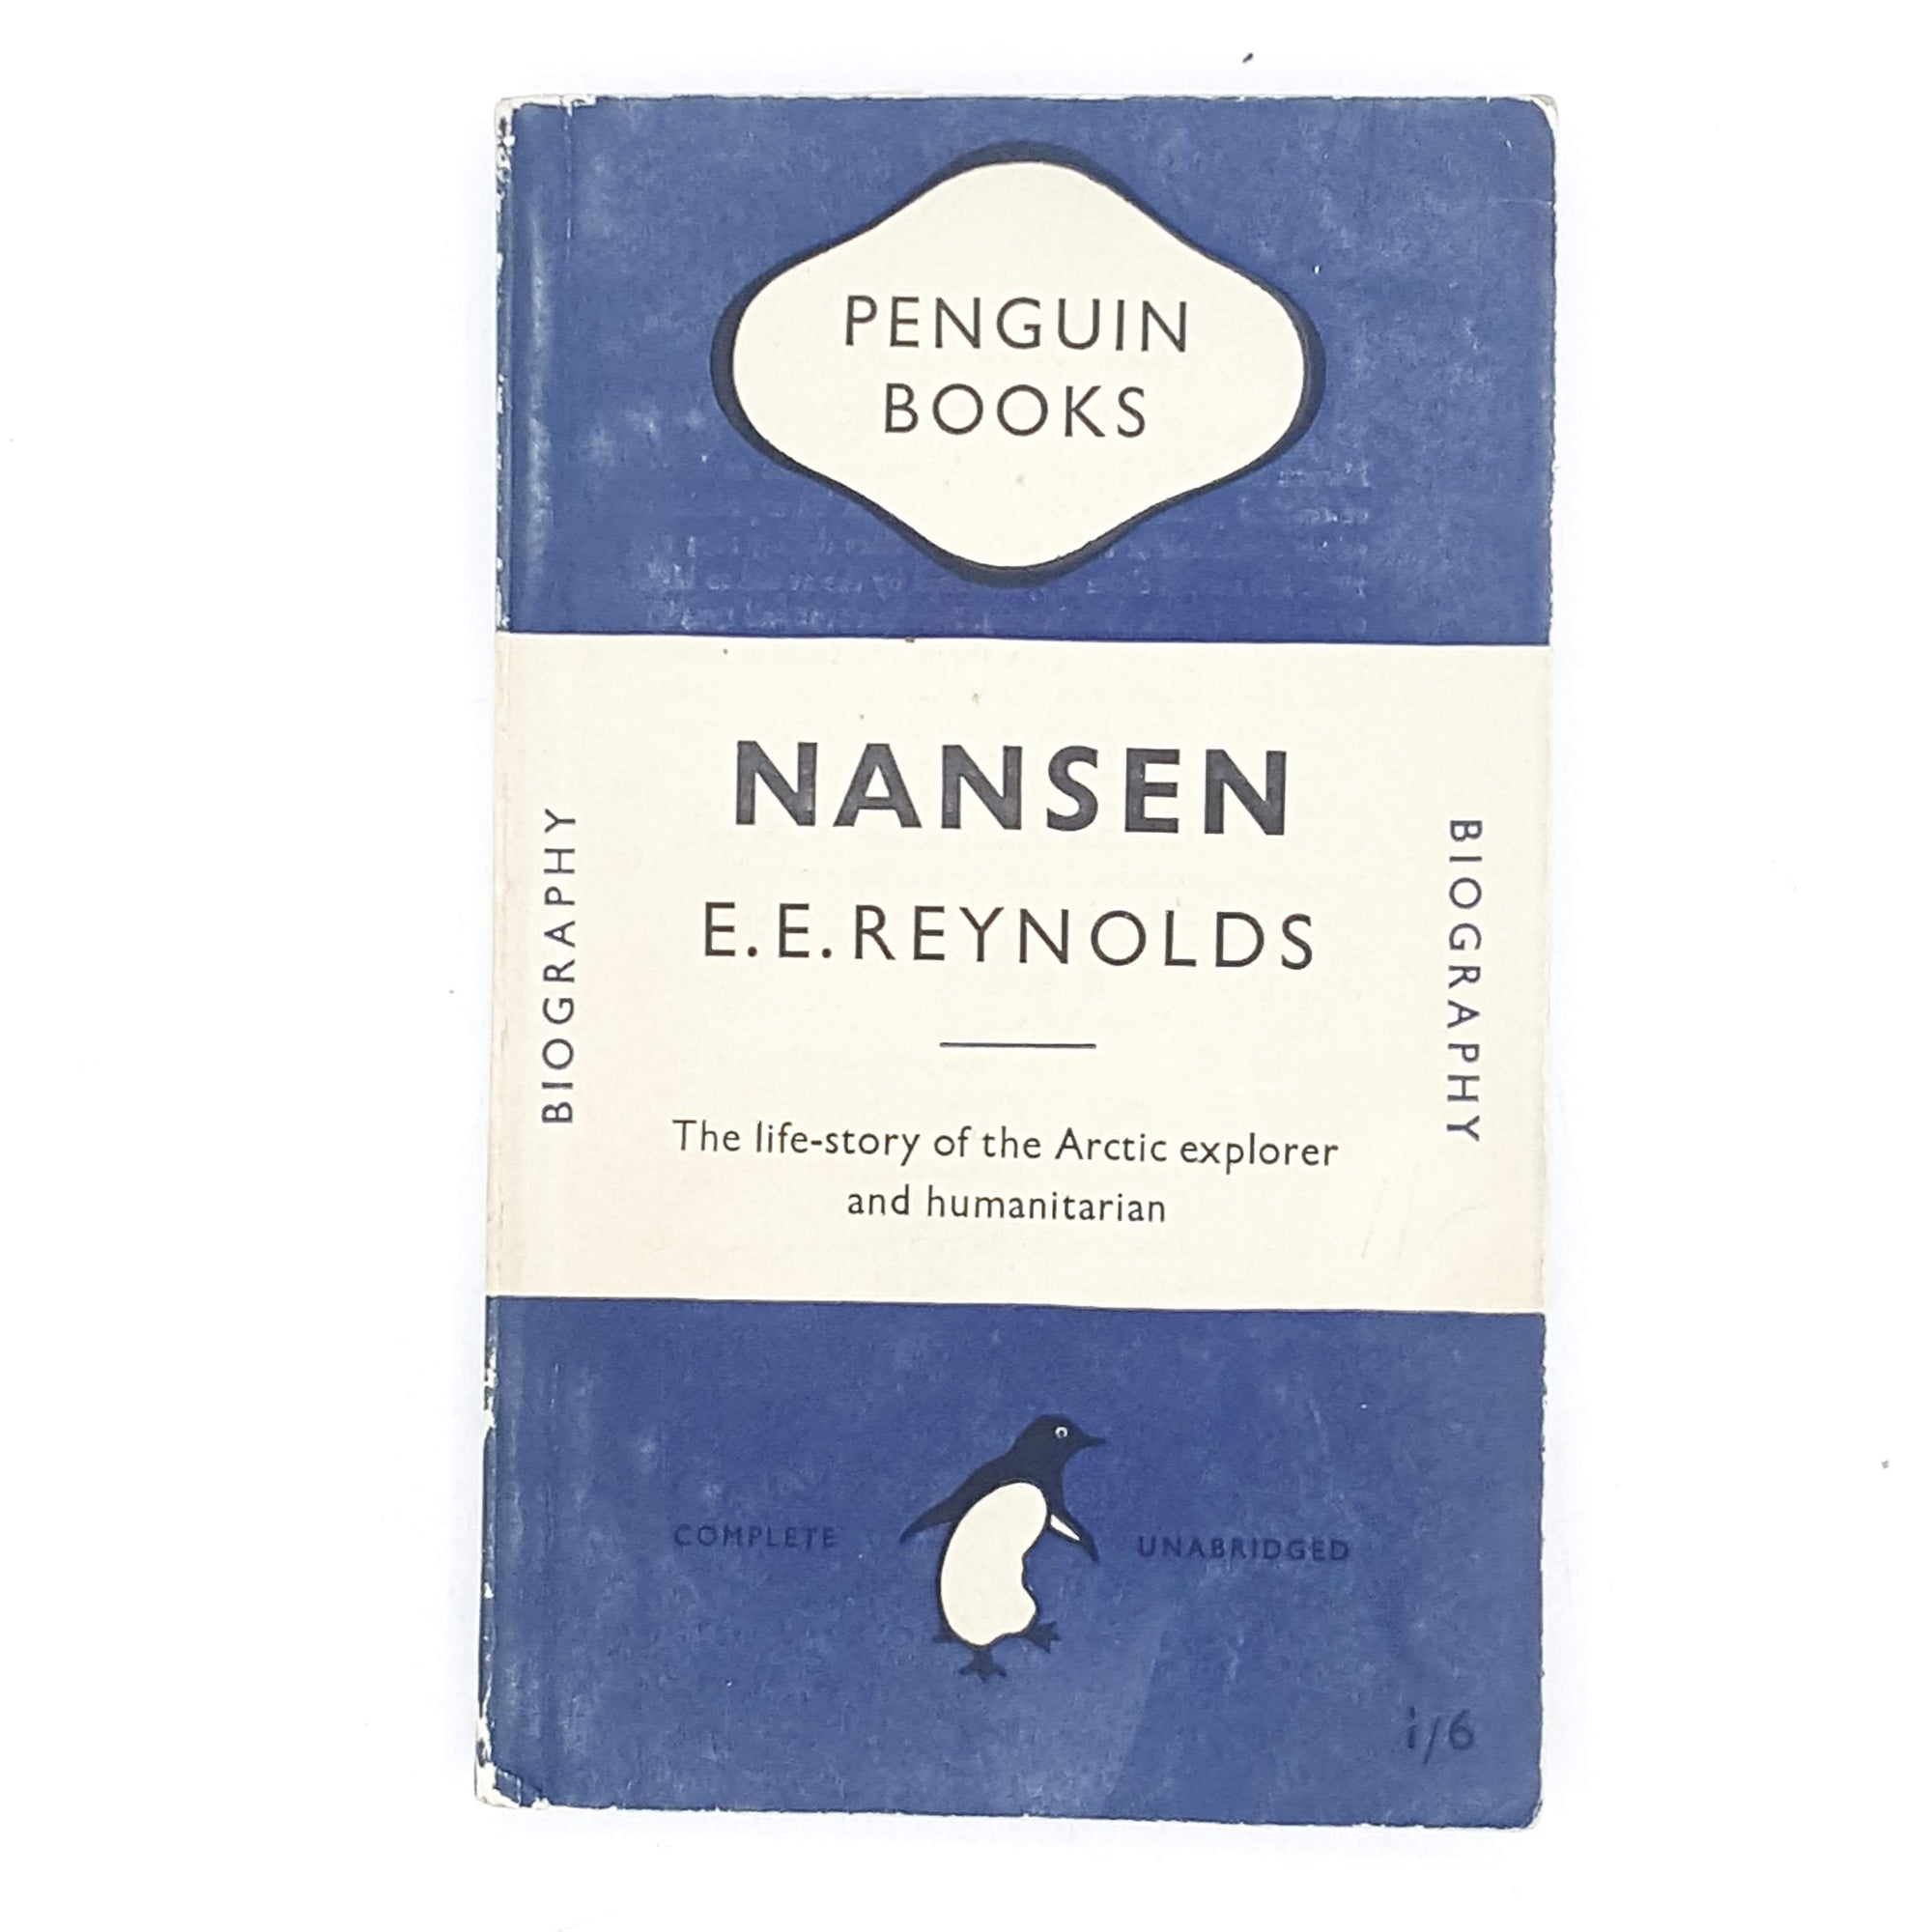 Nansen by E. E. Reynolds 1949